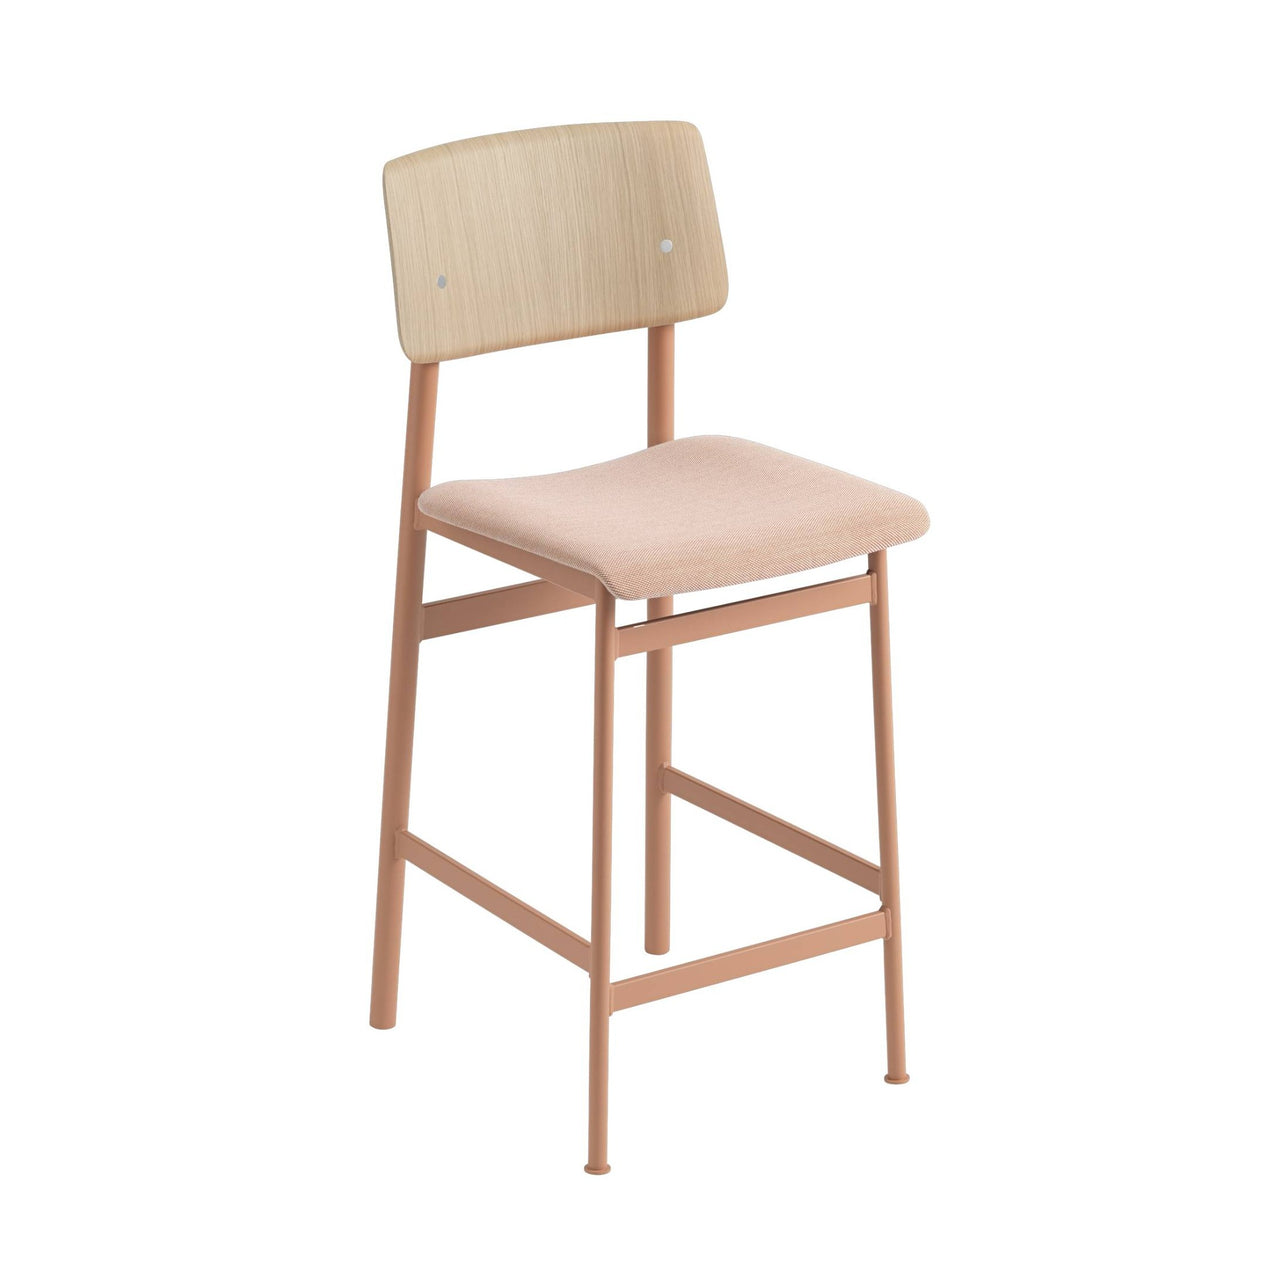 Loft Counter Stool Upholstered: Dusty Rose Base + Oak